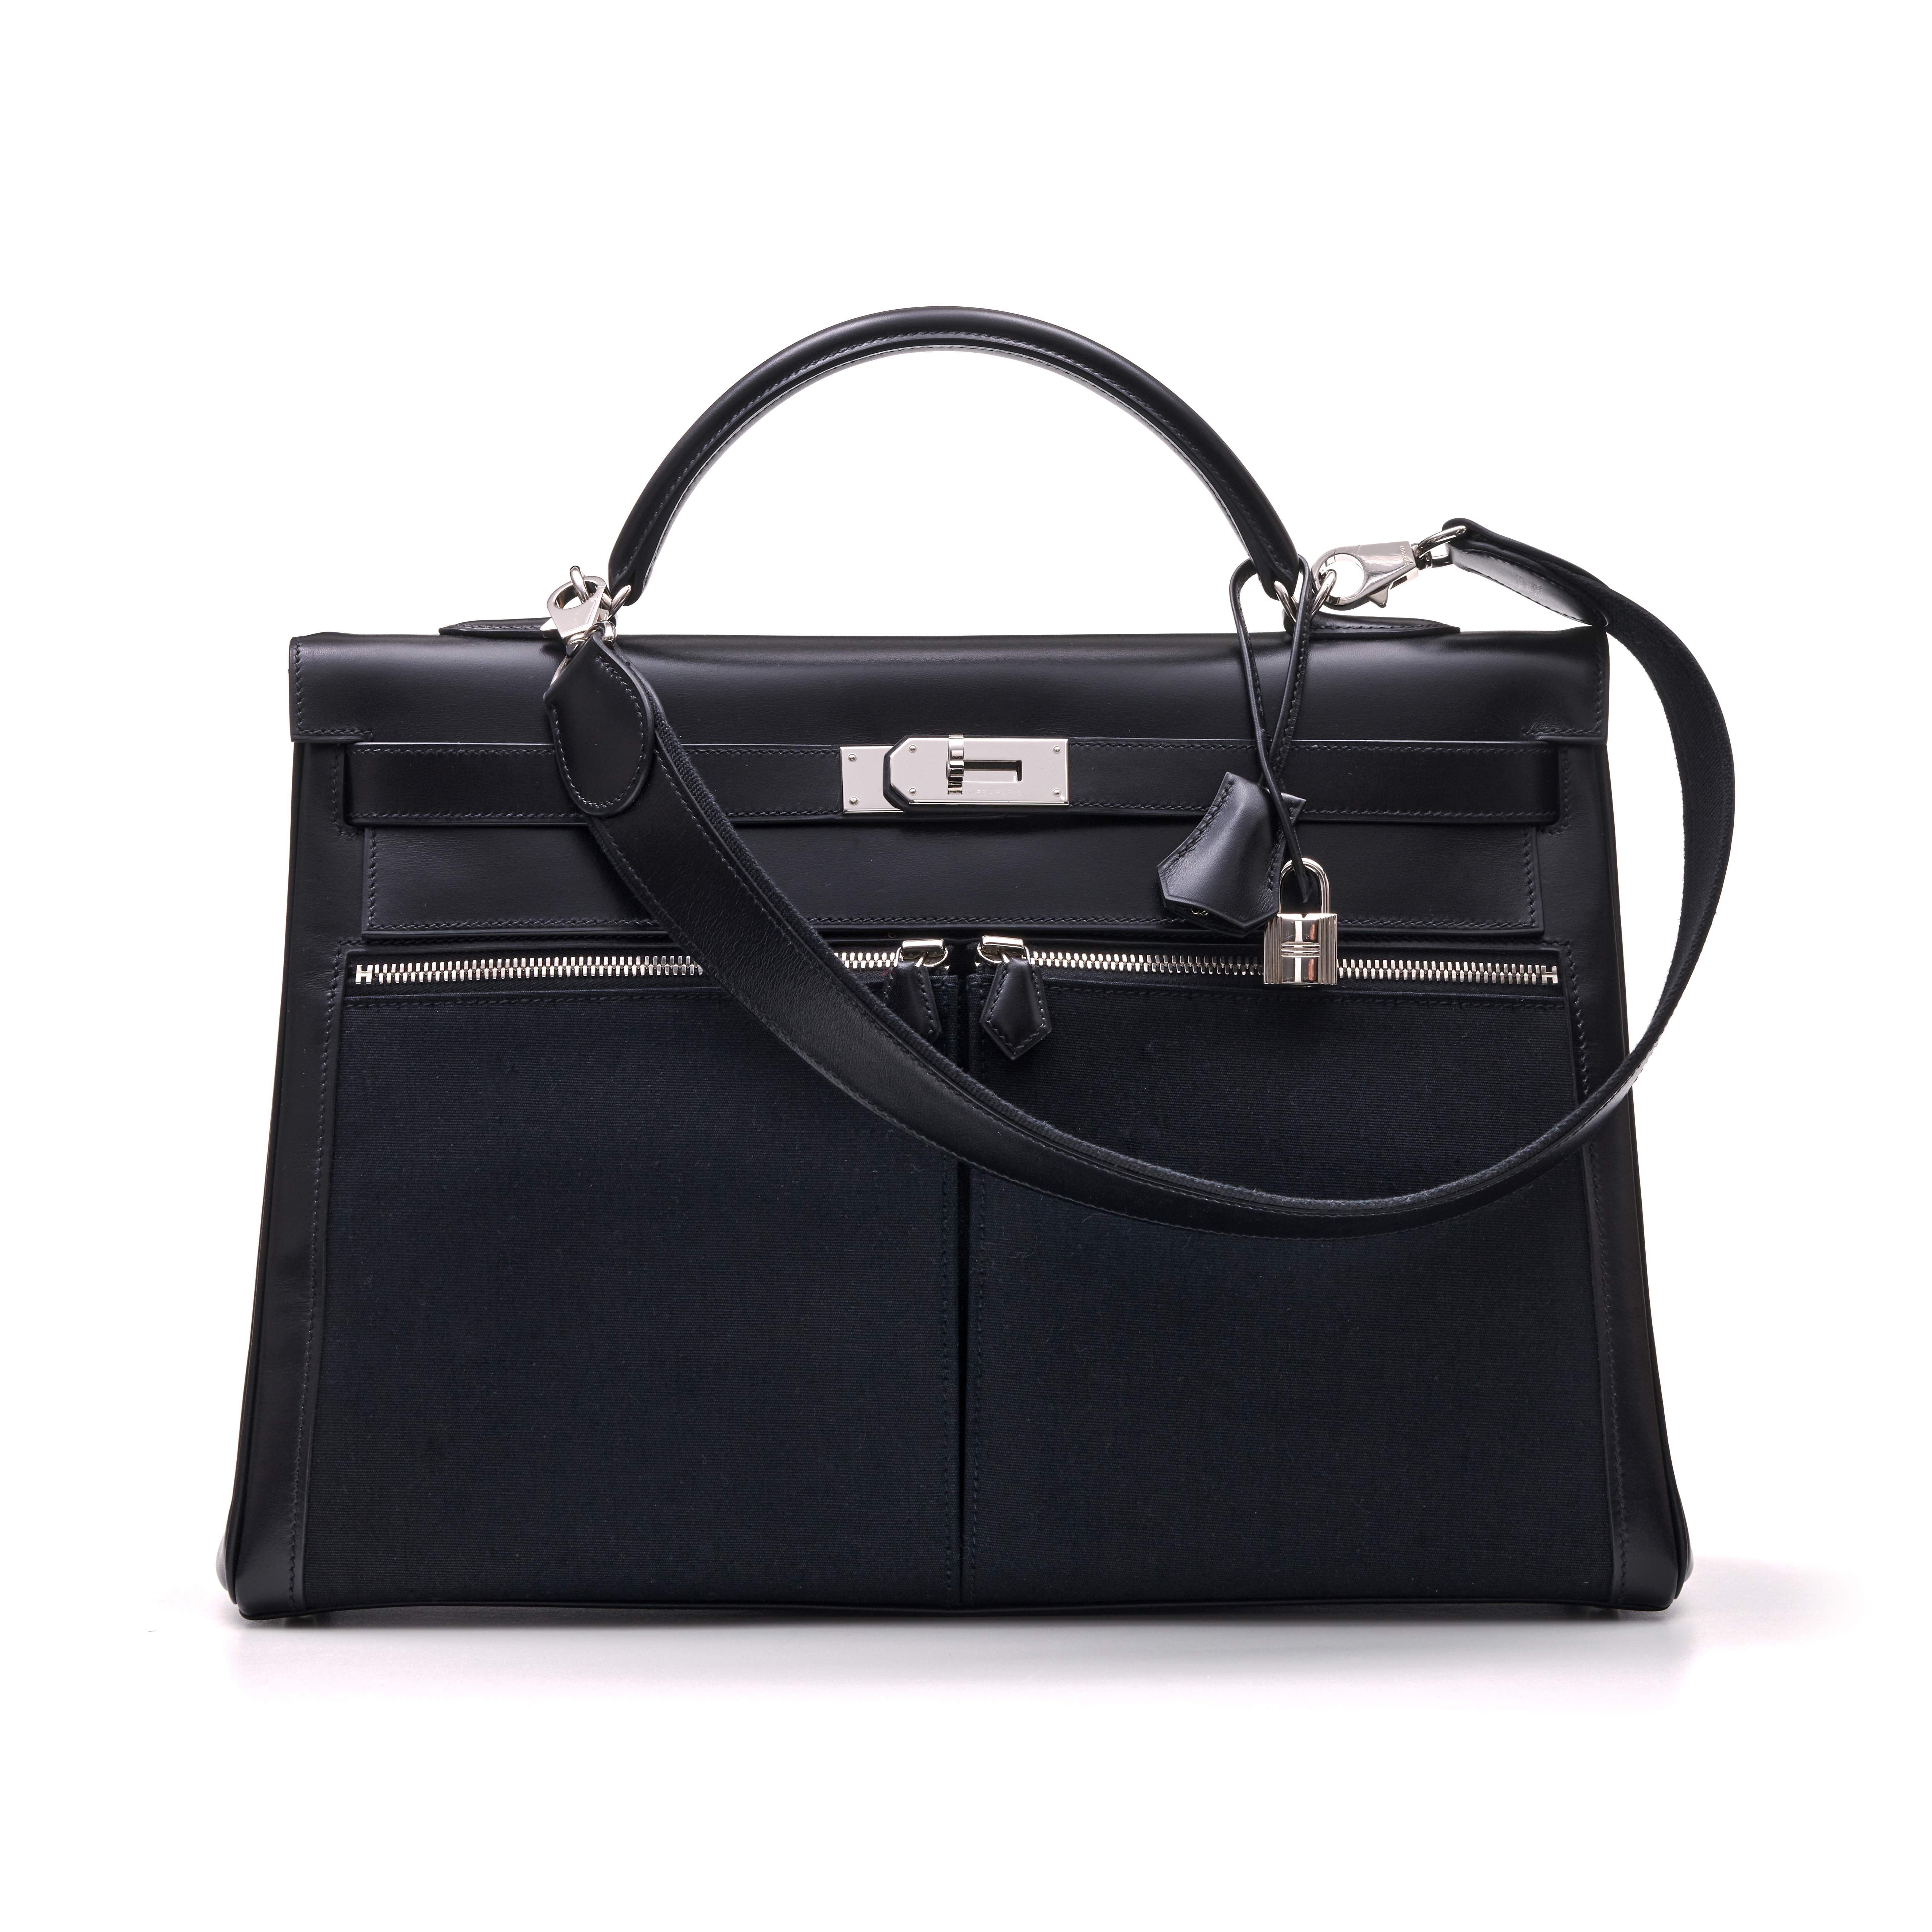 View full screen - View 1 of Lot 332. Black Kelly Lakis 40cm in Toile and Box Leather with Palladium Hardware, 2008.